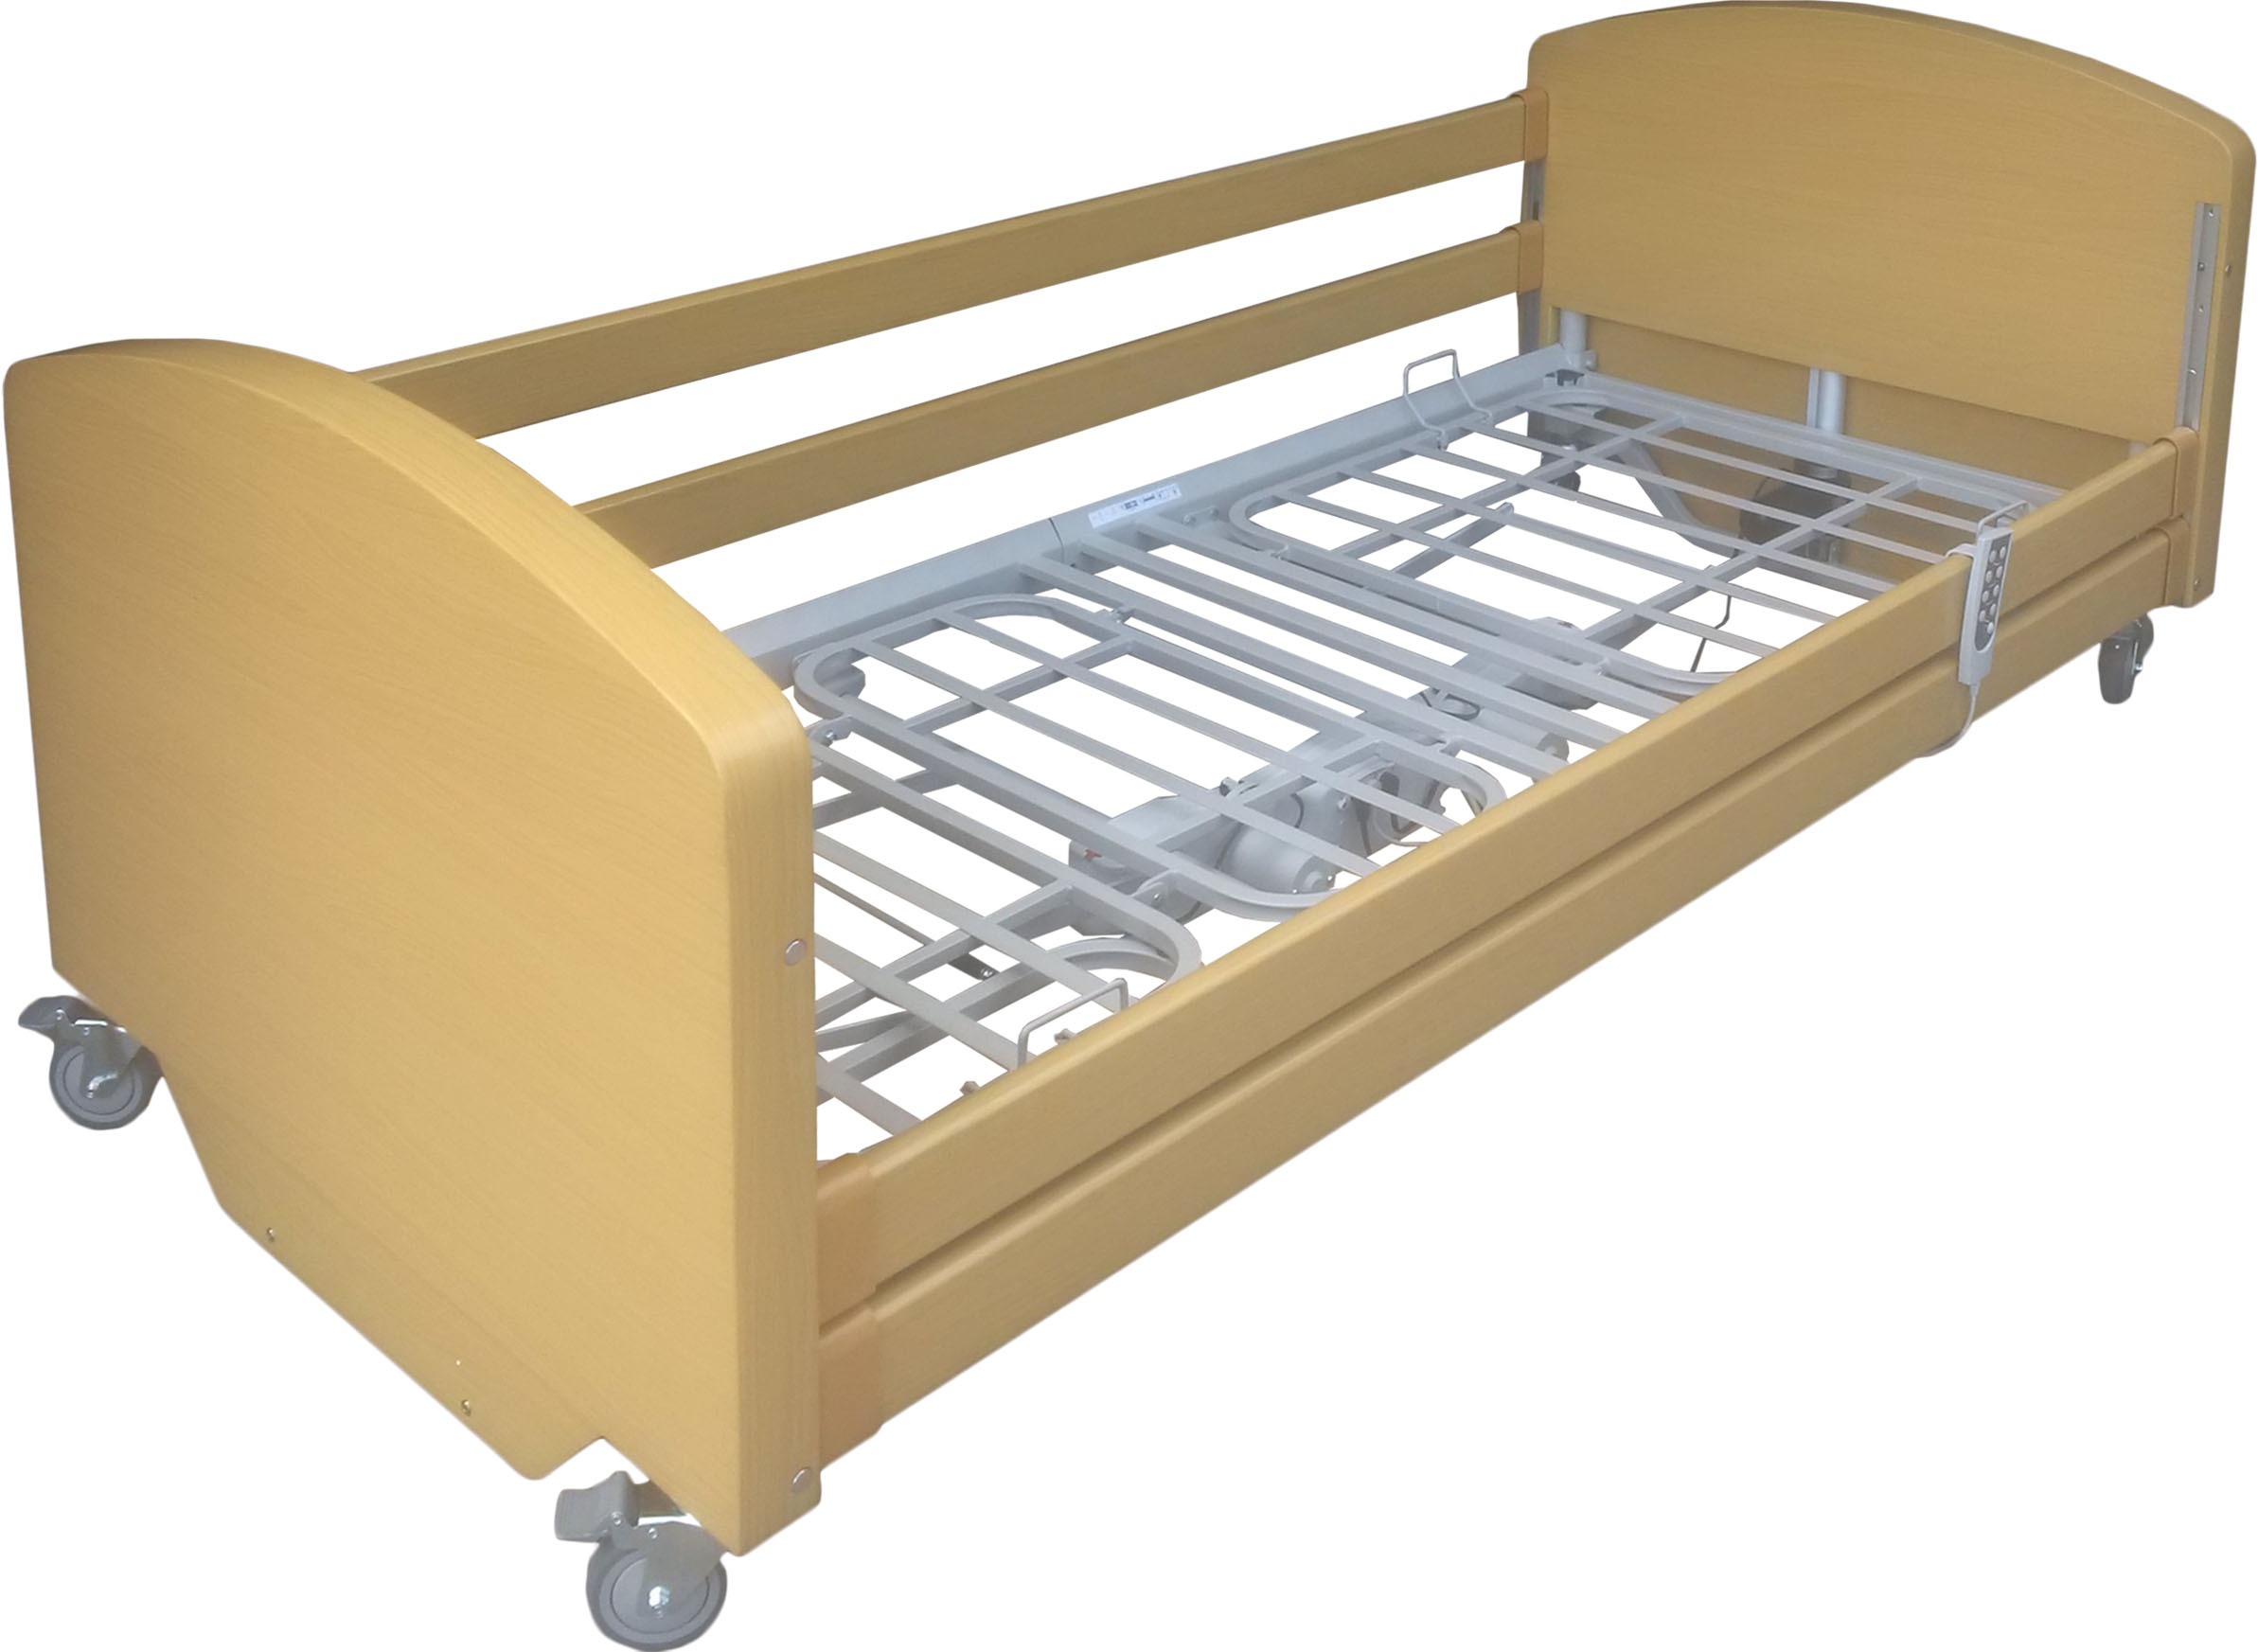 Electra Profile Bed